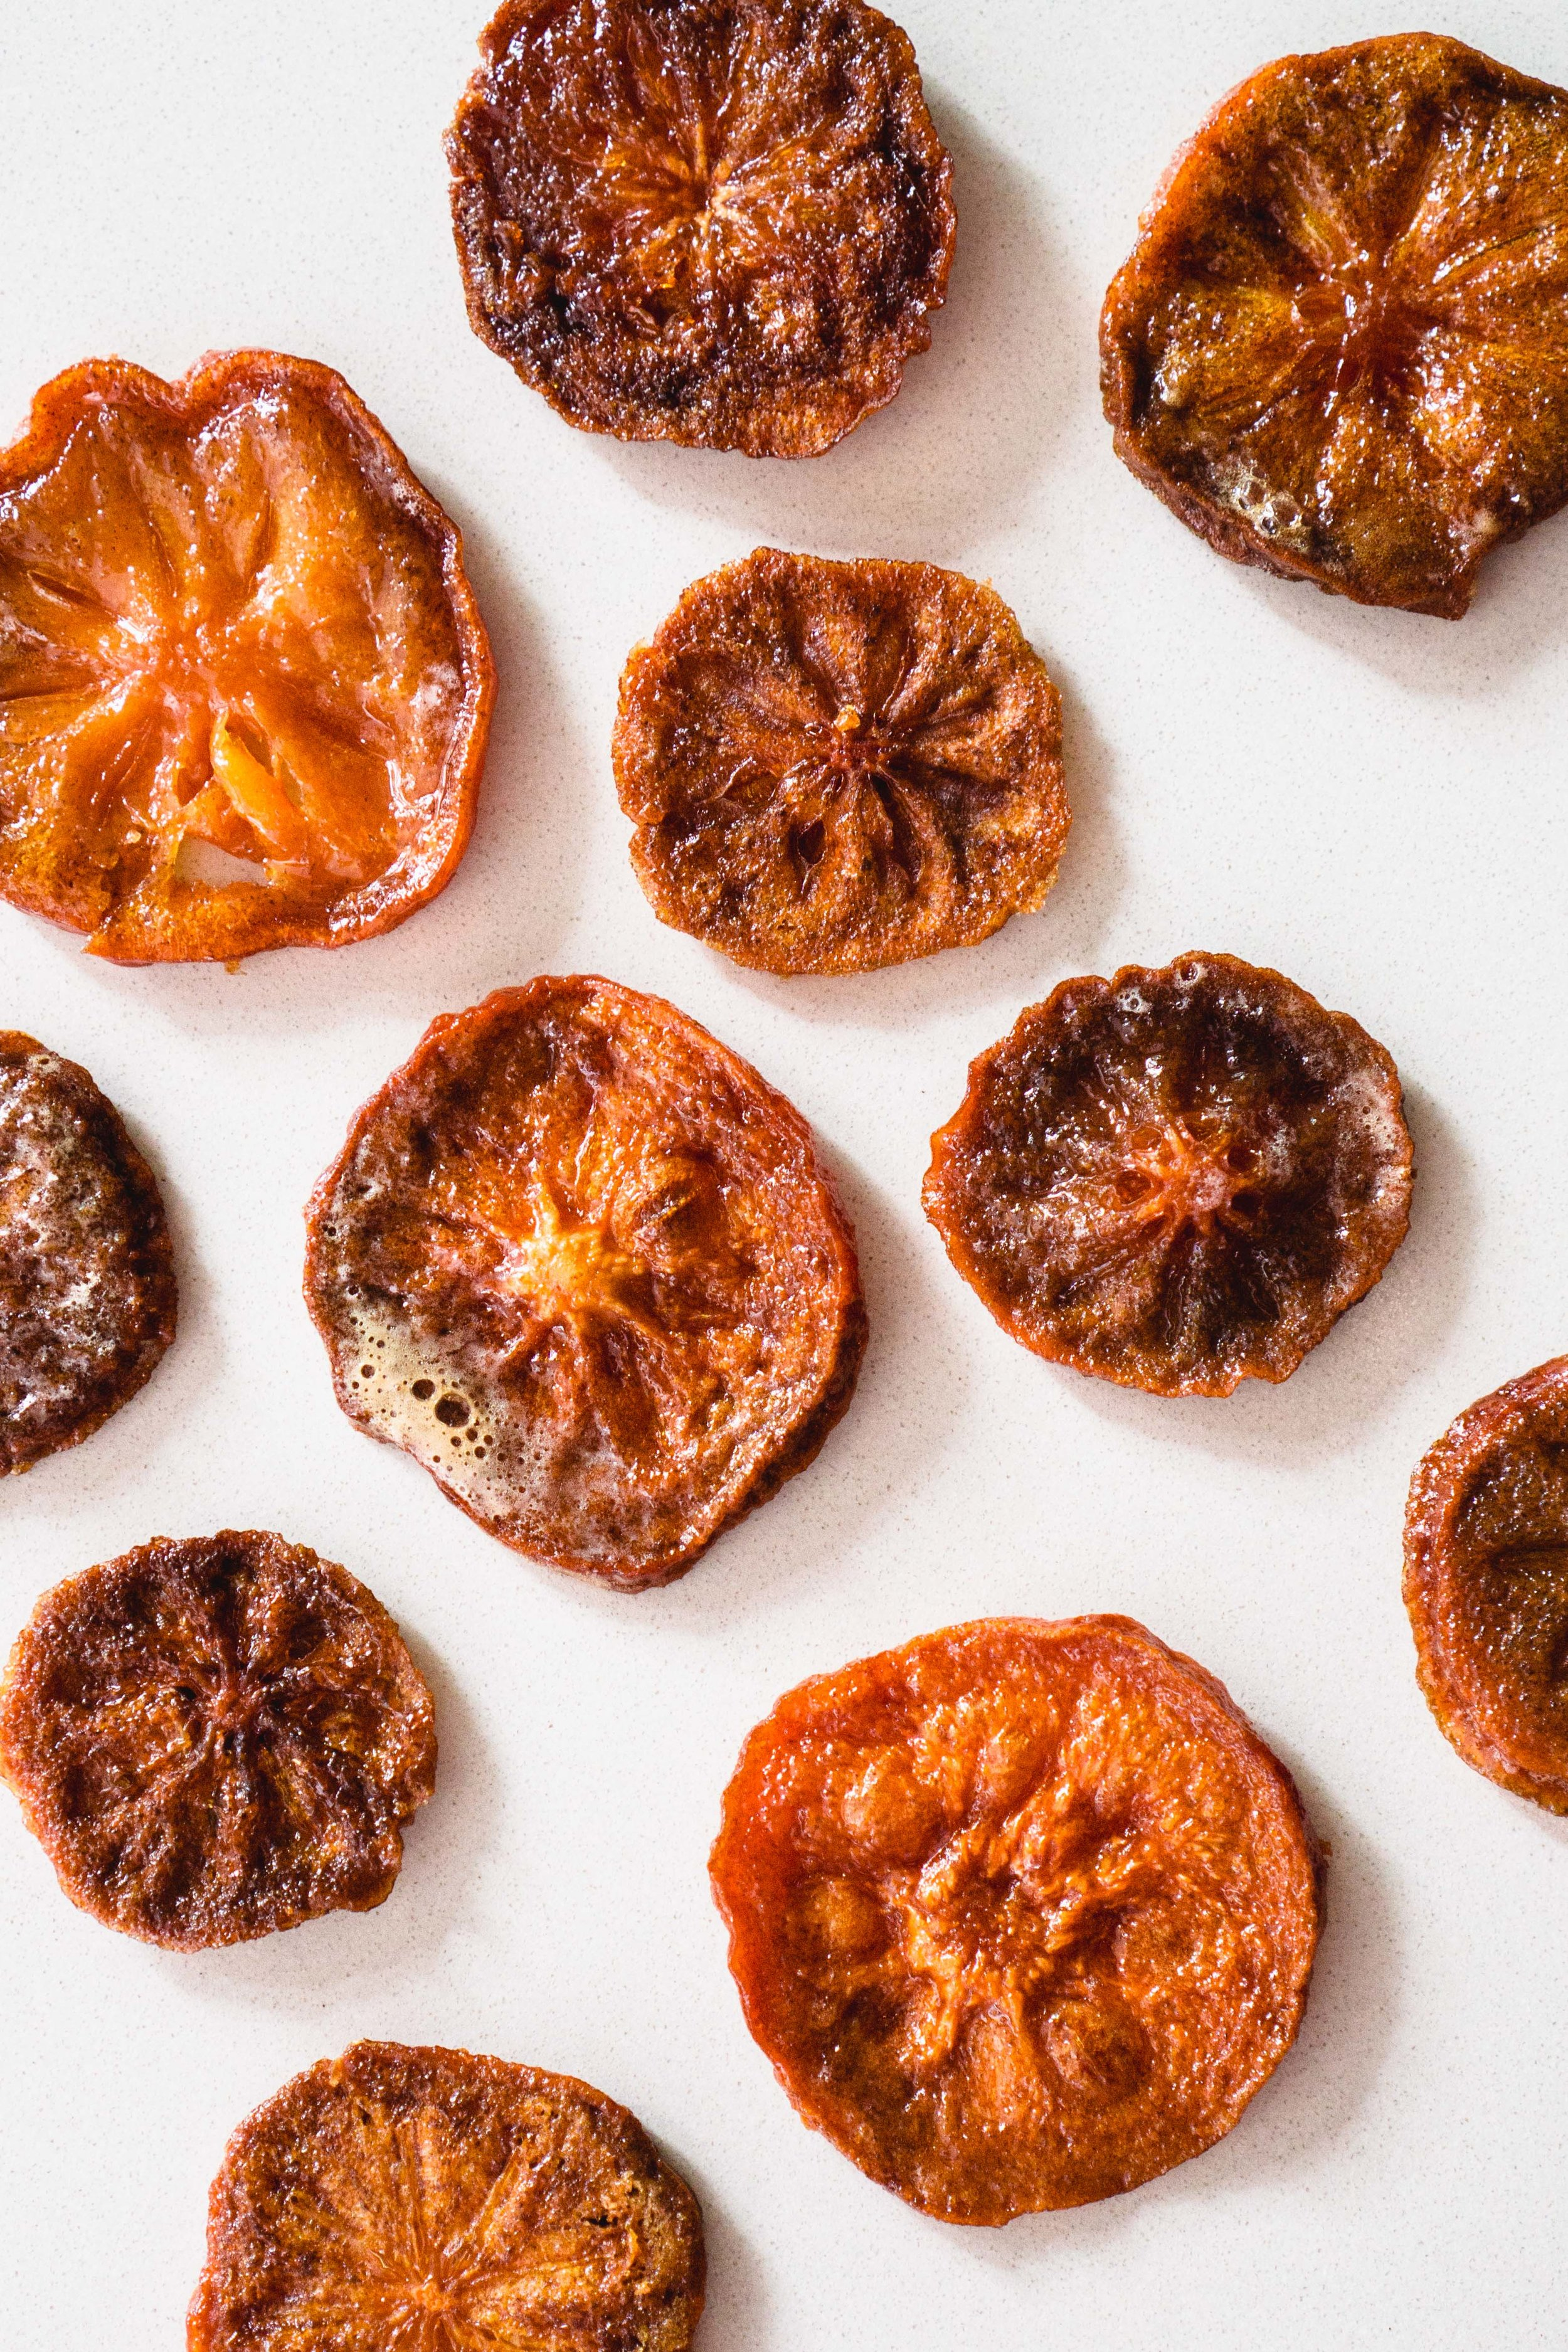 Roasted Persimmon